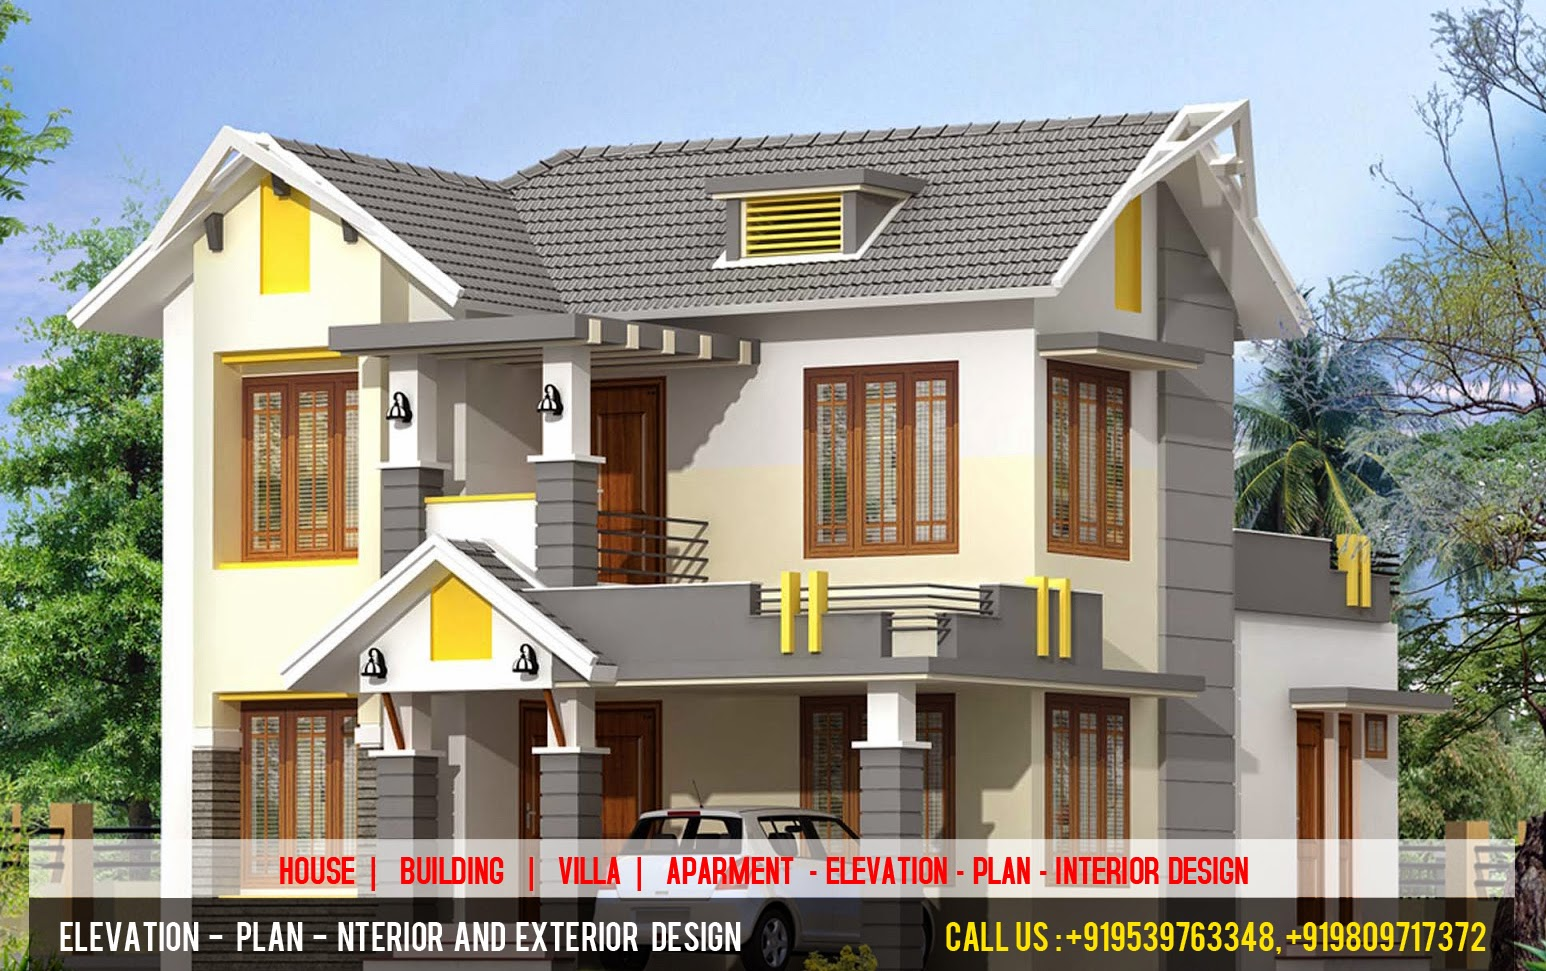 Elevation Plan Interior Design : D elevation plan designer